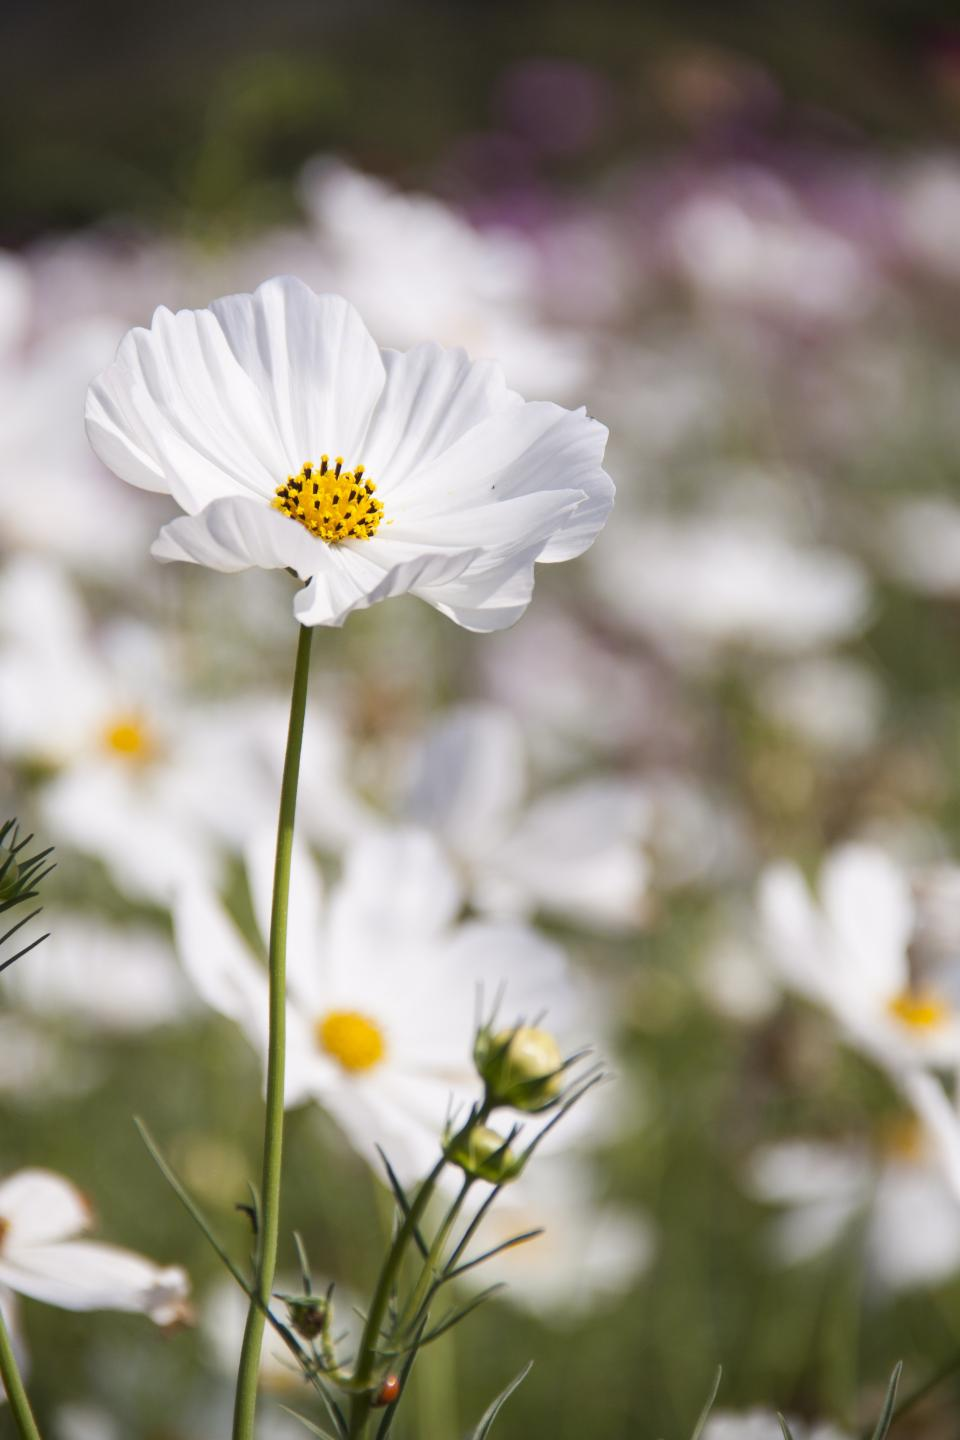 flowers nature blossoms field bed white stems stalks branches petals leaves outdoors still bokeh